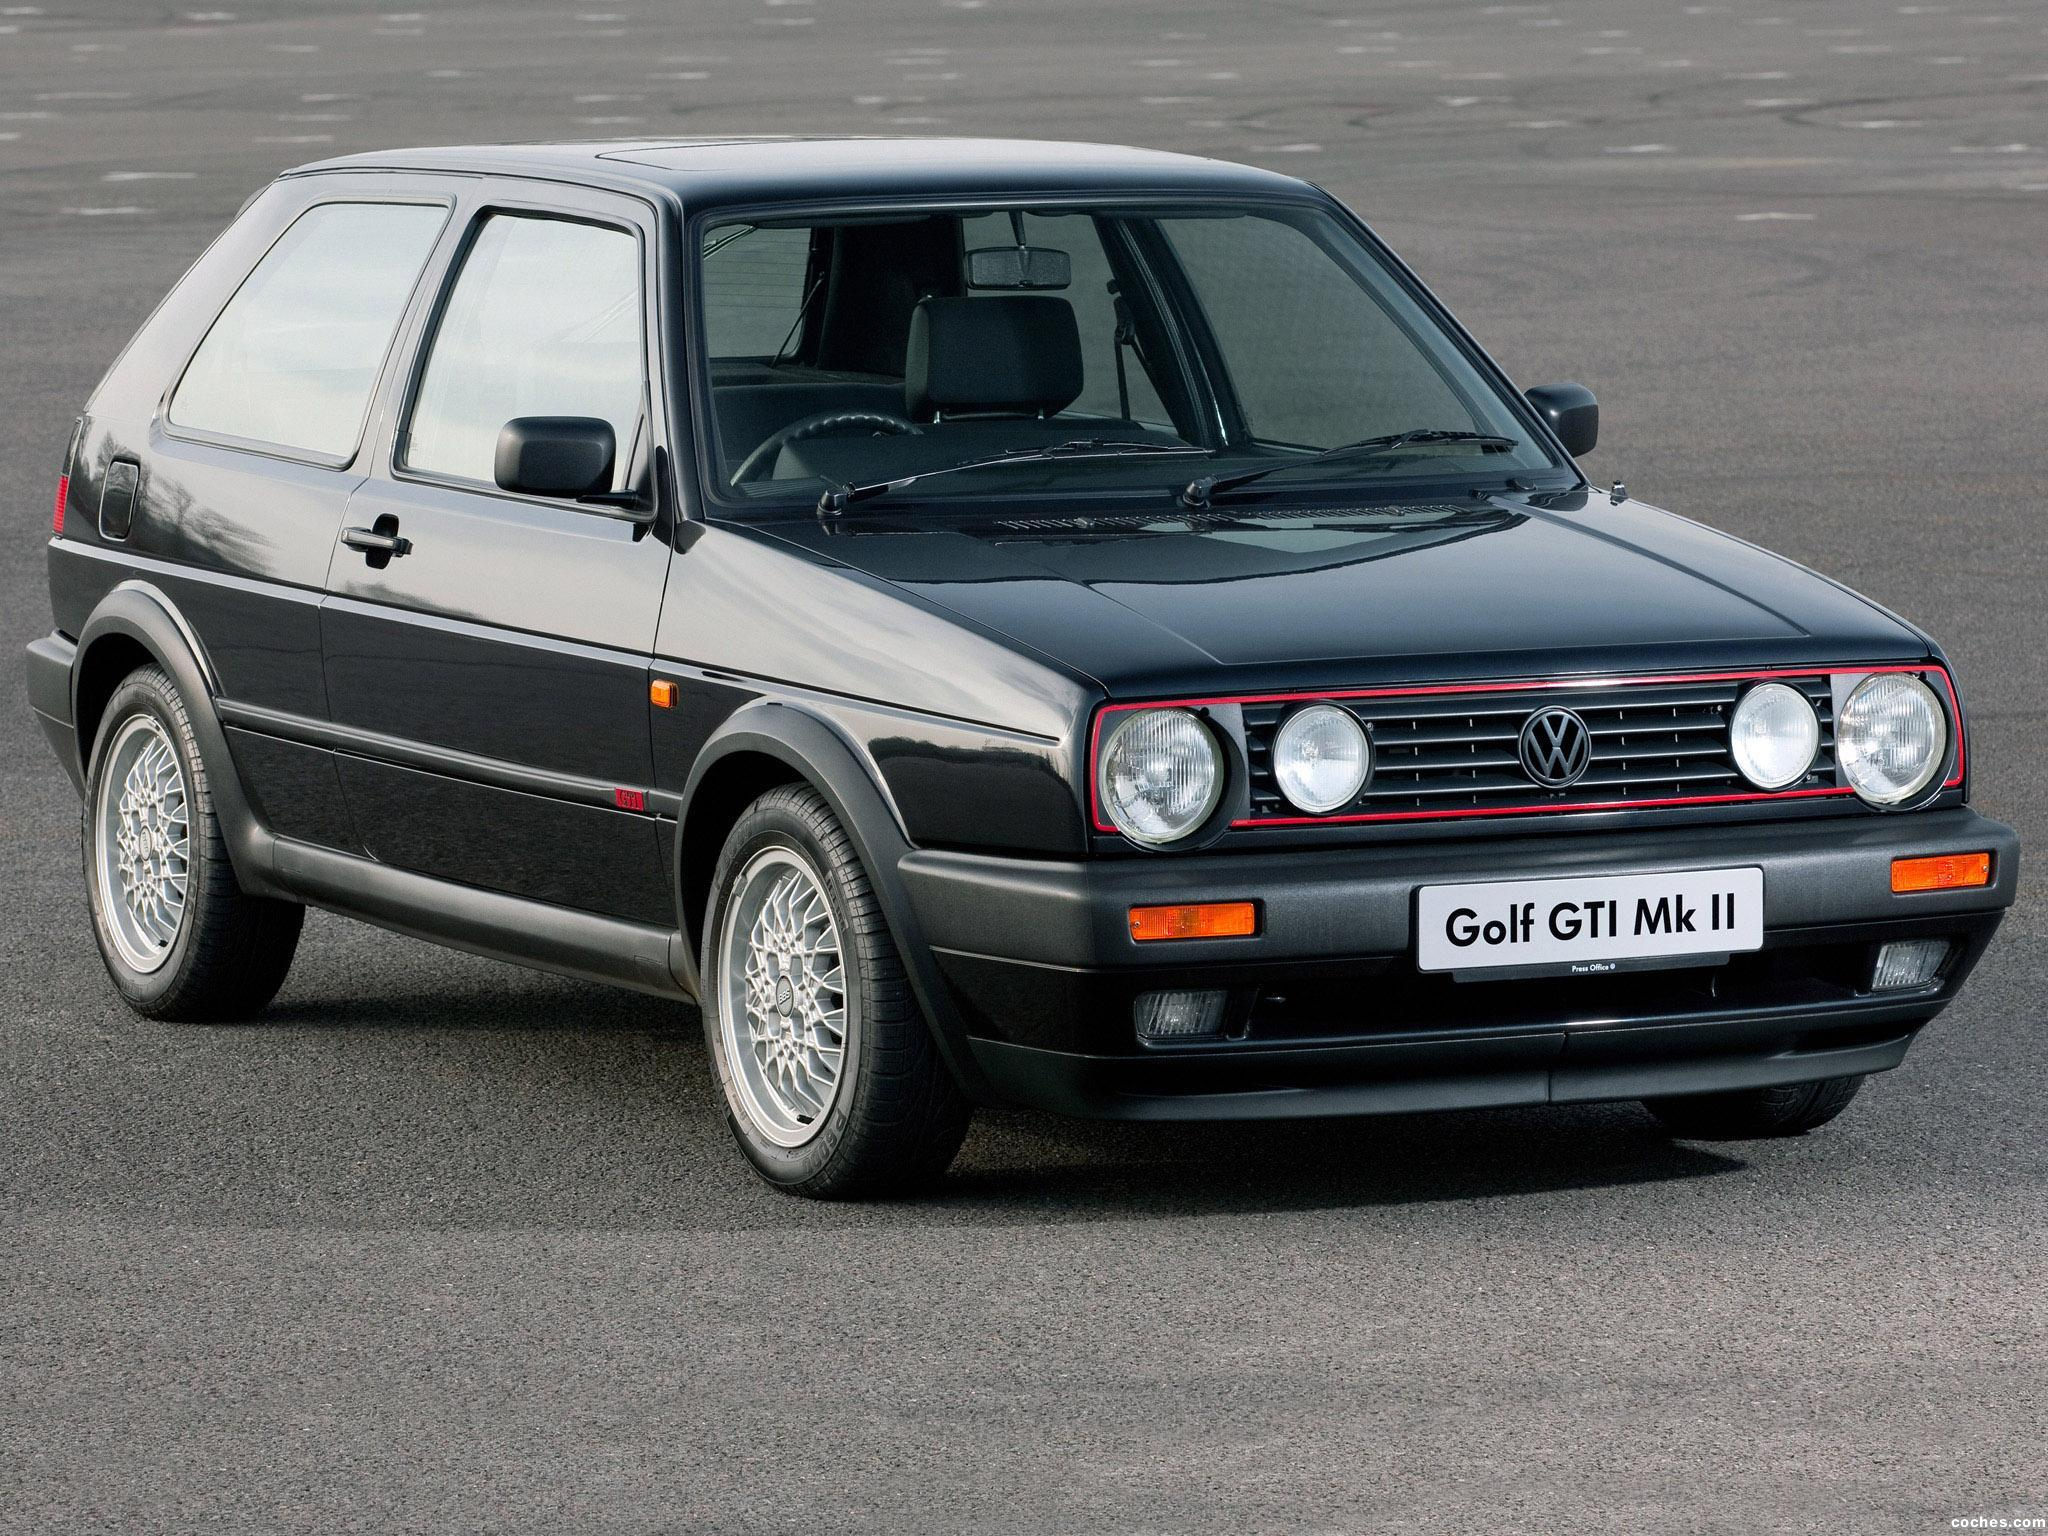 VW Golf GTI Turbo